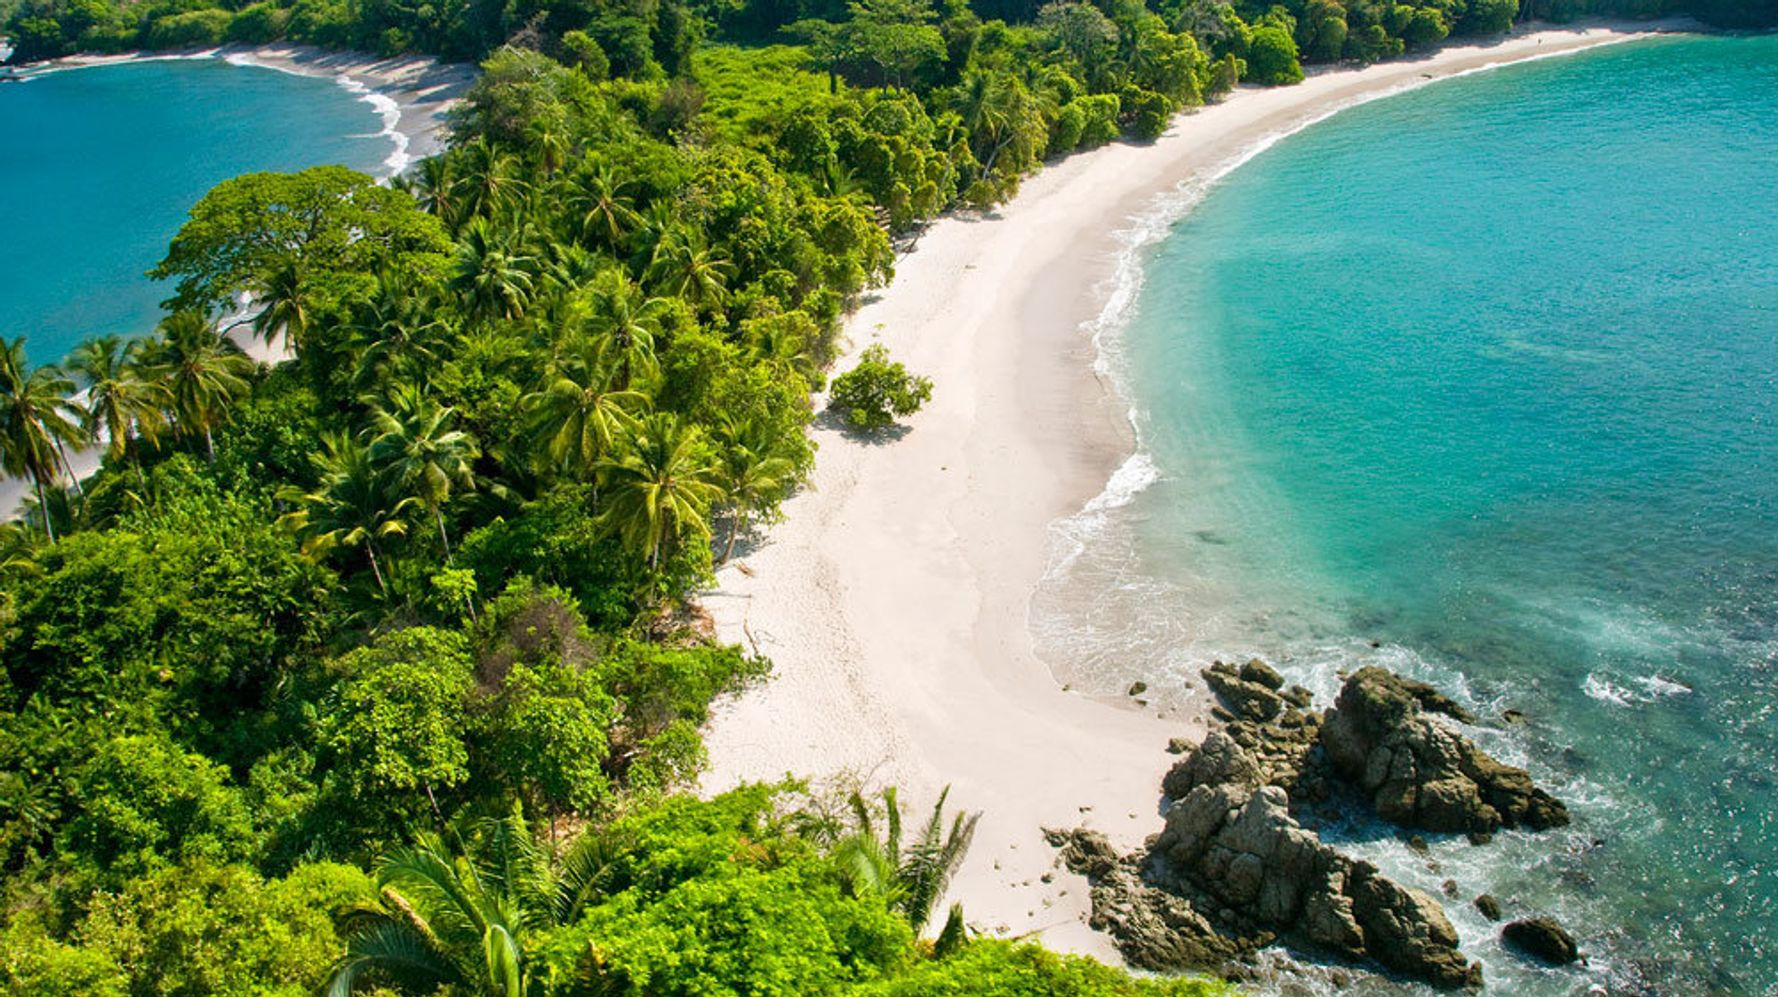 Five Reasons Why Costa Rica Should Be Top Of Your Travel List